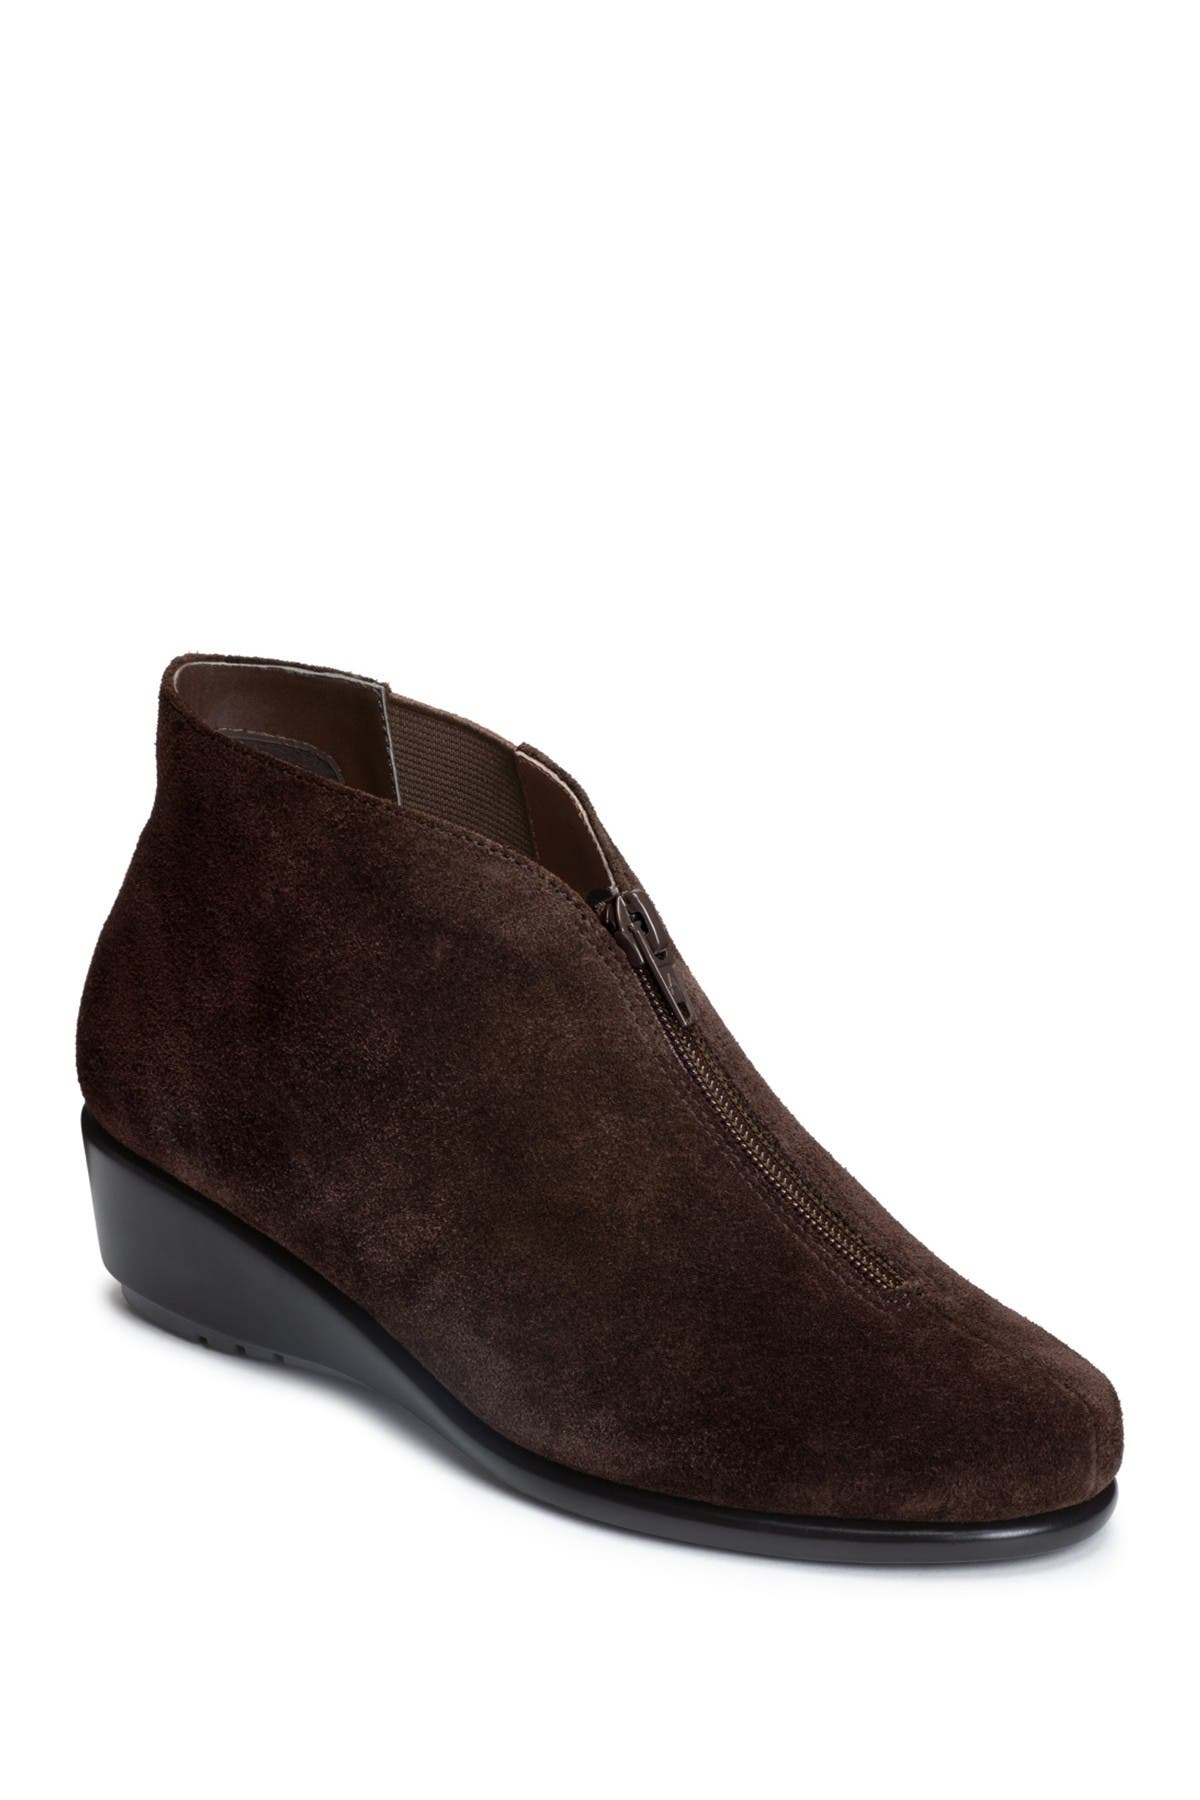 Image of Aerosoles Allowance Suede Ankle Bootie - Wide Width Available